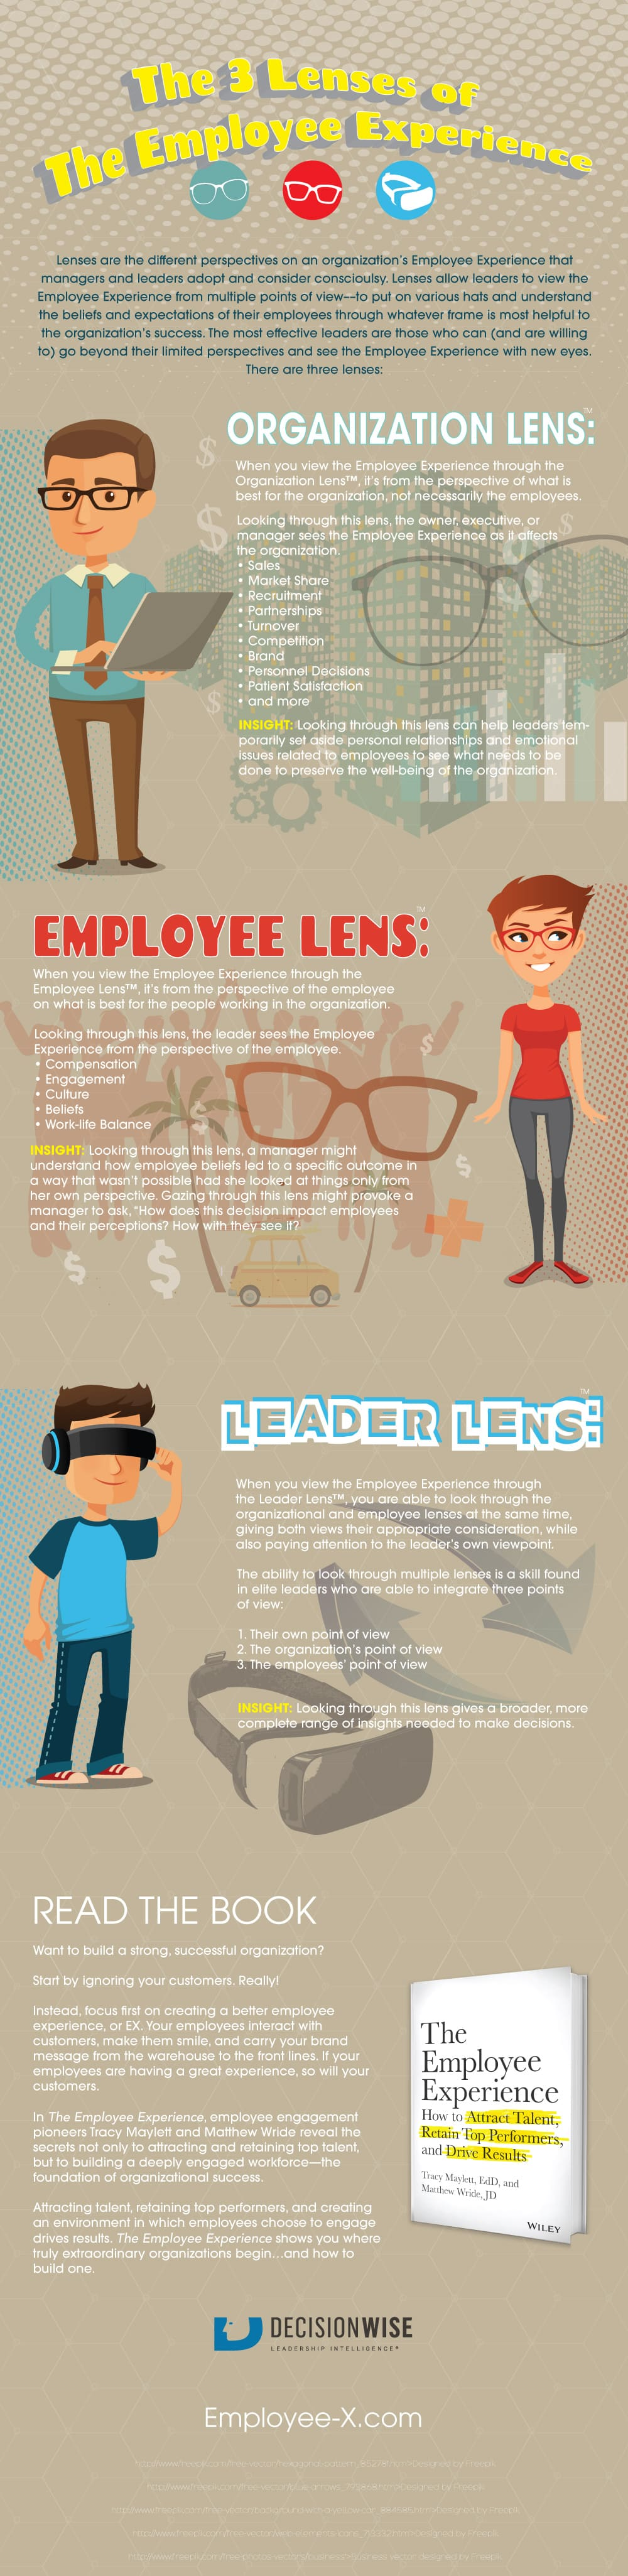 Infographic: The Three Lenses of the Employee Experience